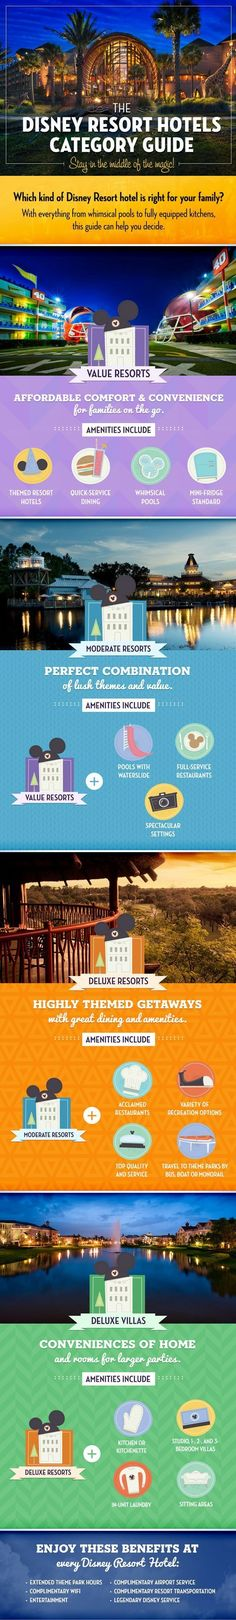 Learn which kind of Disney Resort hotel is right for your family at Walt Disney World! Our Laughing Place Travel is here to help you plan your magical Disney vacation because at OLP Travel, we put the Pixie Dust in Concierge Service! #olptravel: